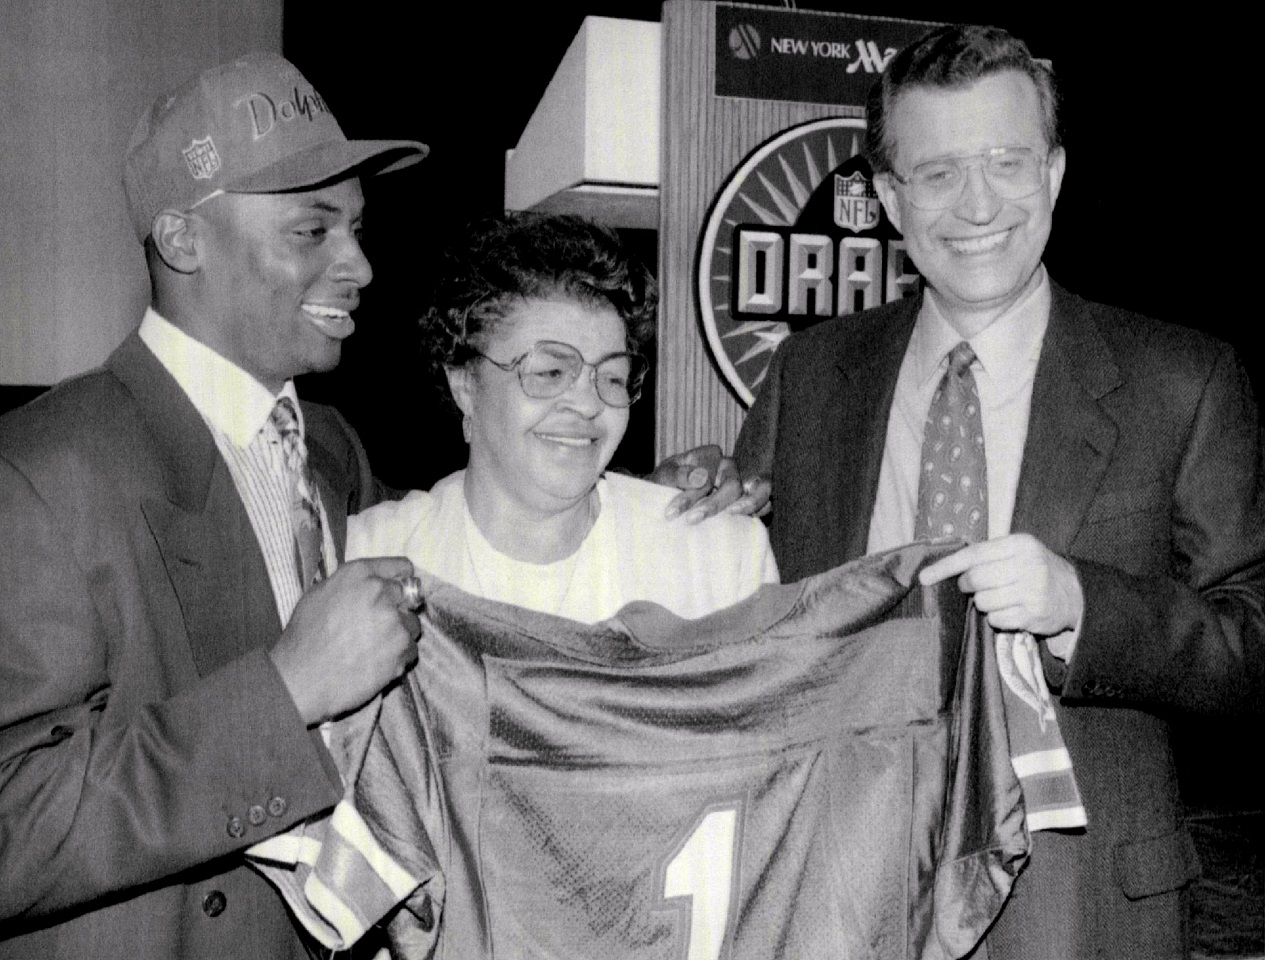 Troy Vincent poses with NFL Commissioner Paul Tagliabue at the 1992 NFL Draft